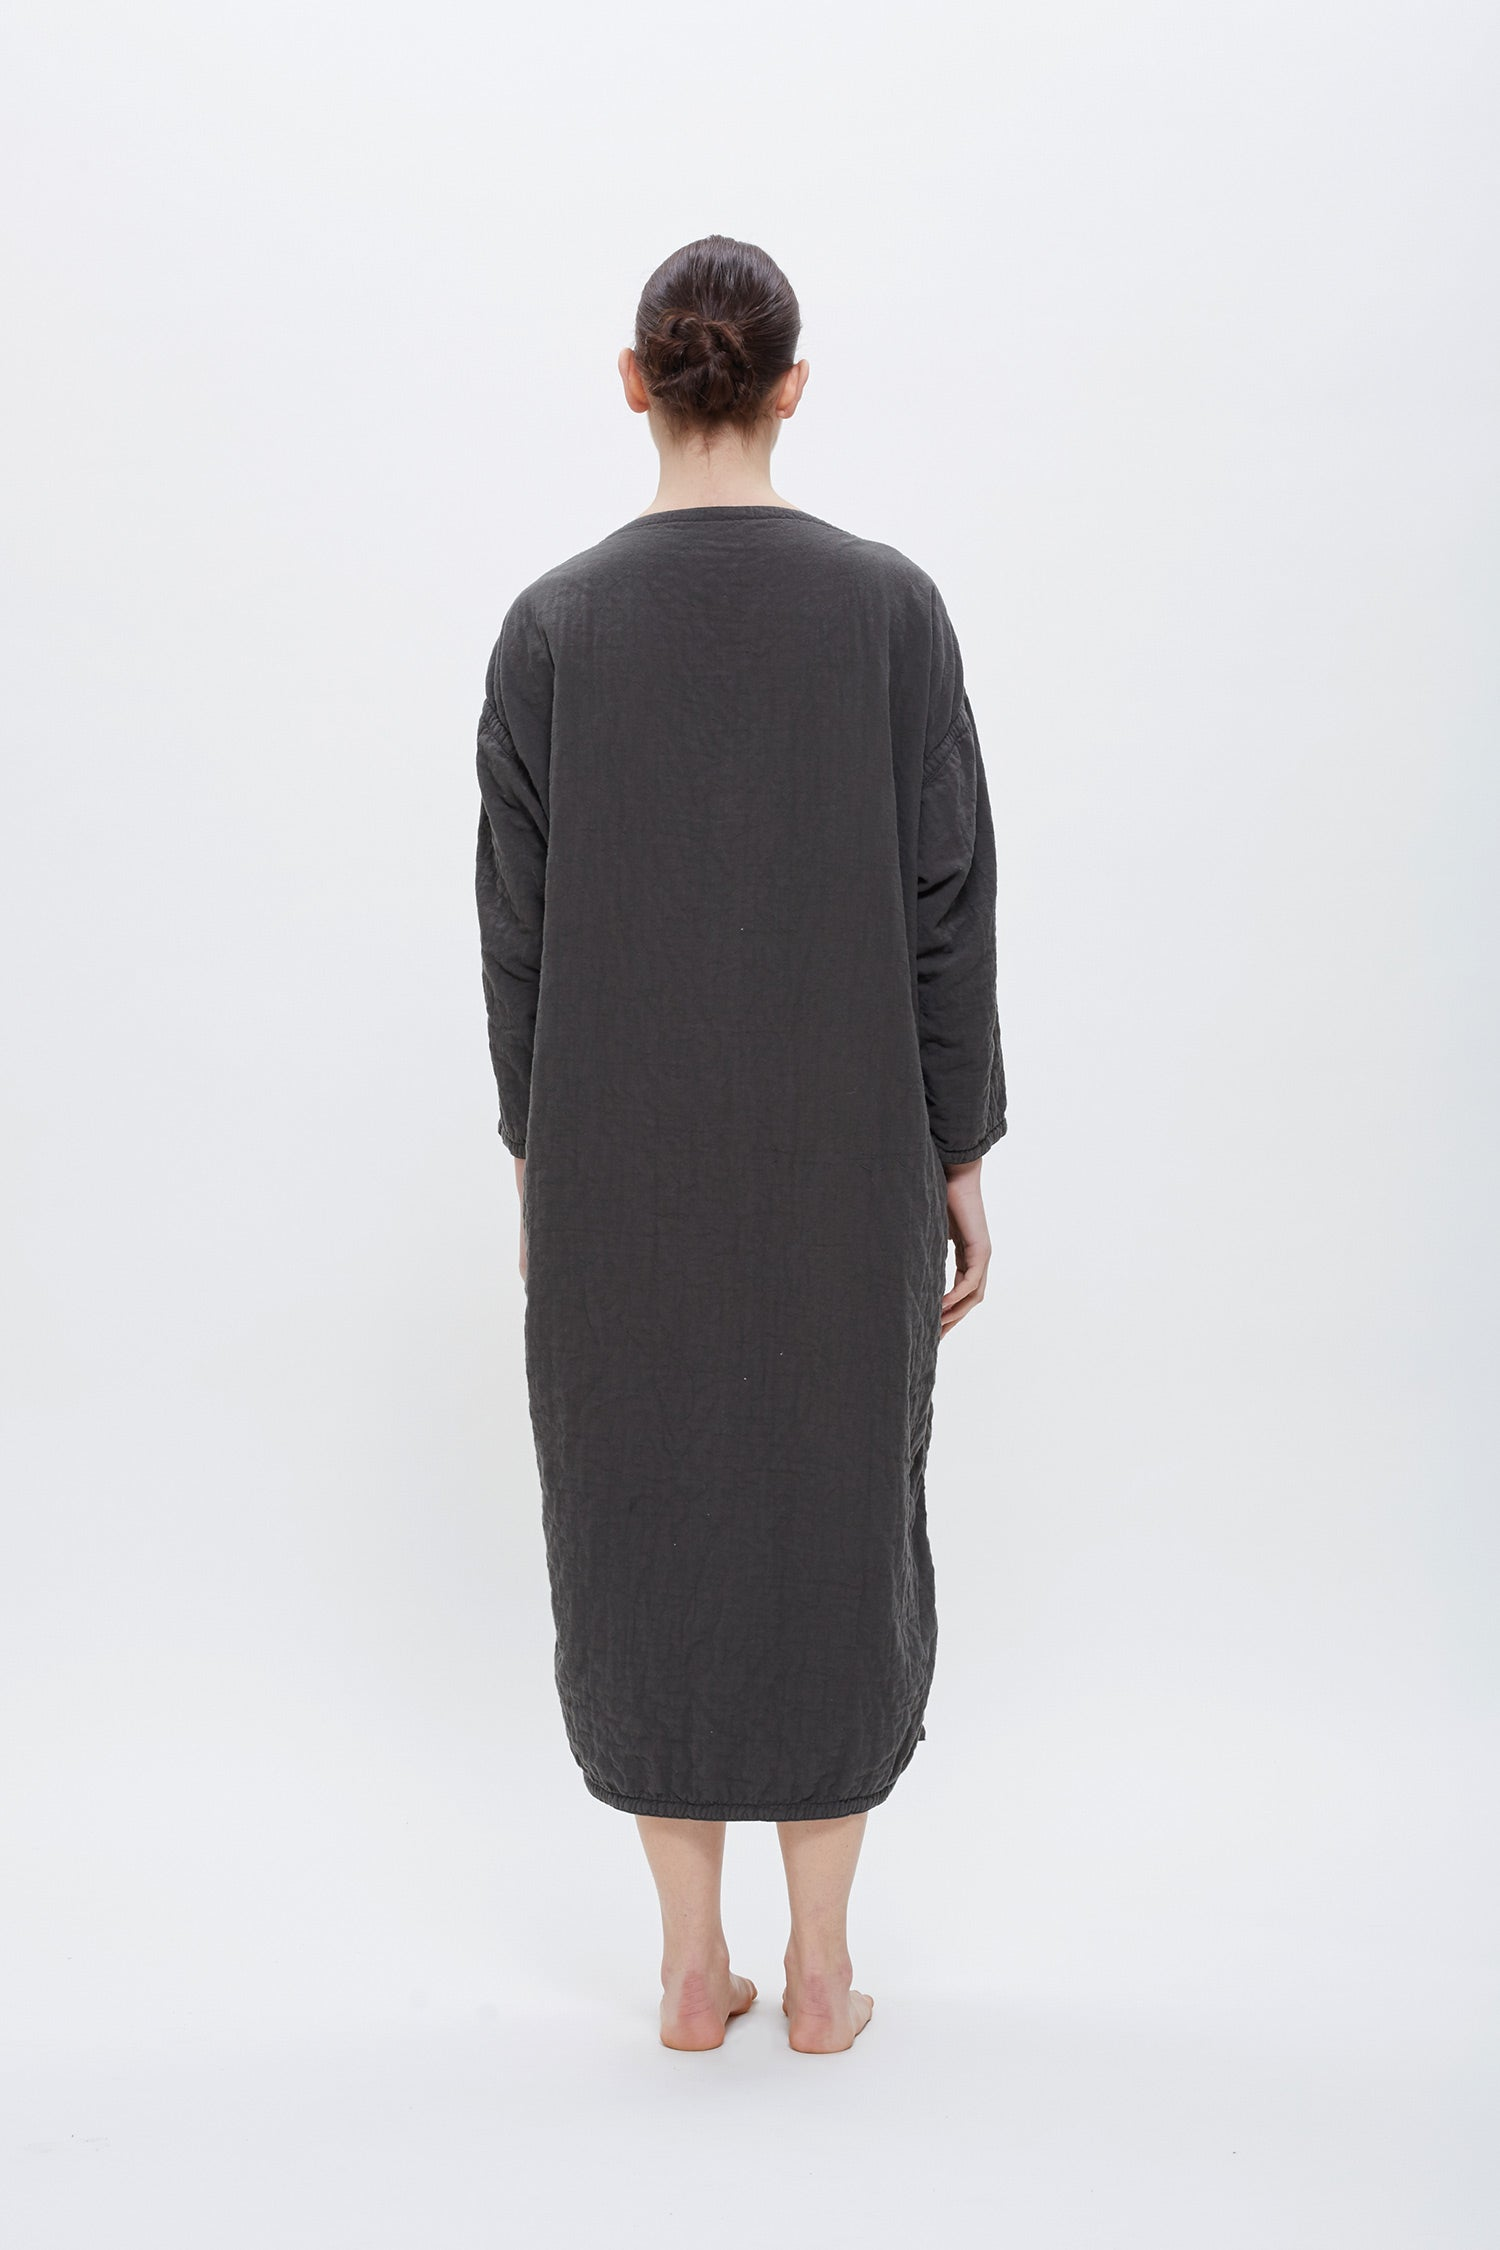 Easy Dress  / CL-EZD18 / Dk. Grey